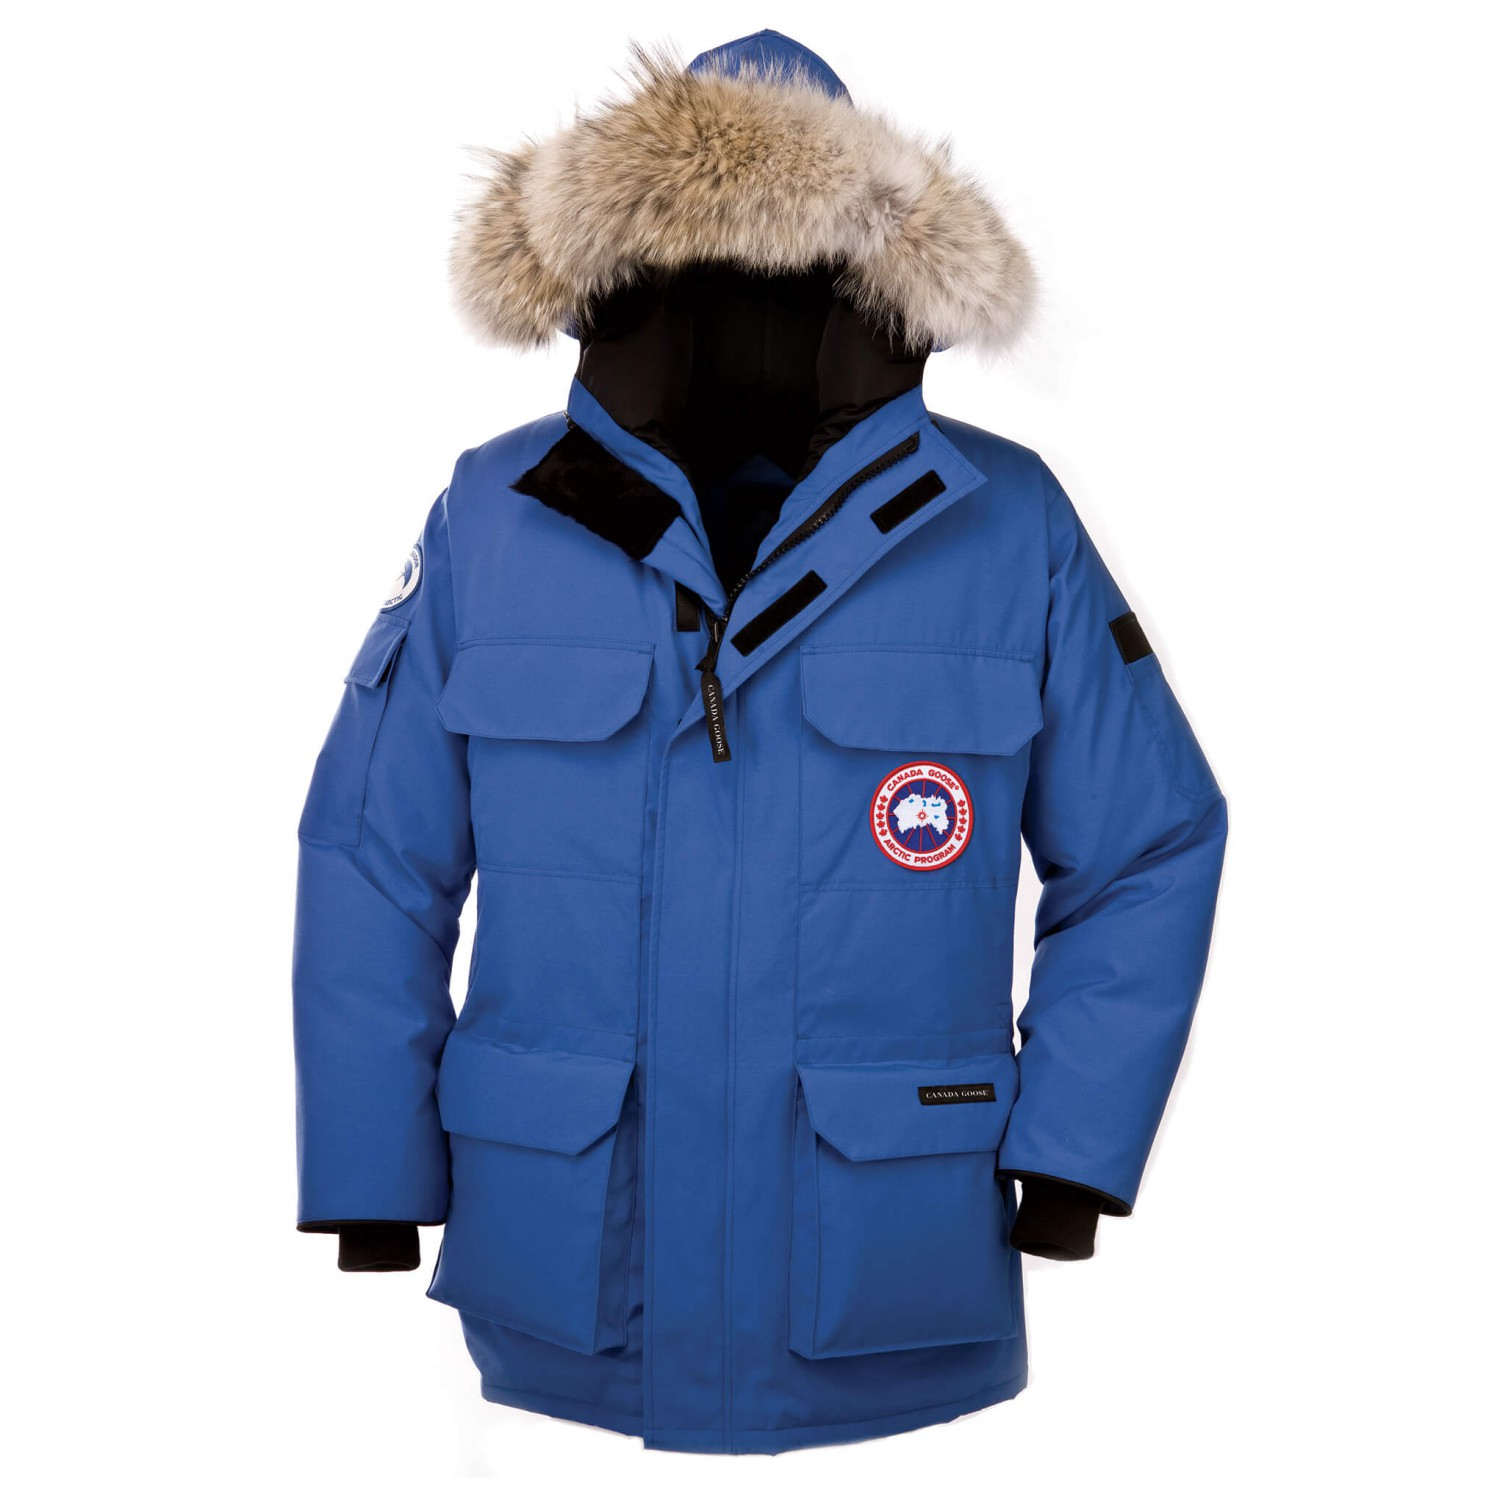 royal blue canada goose jacket